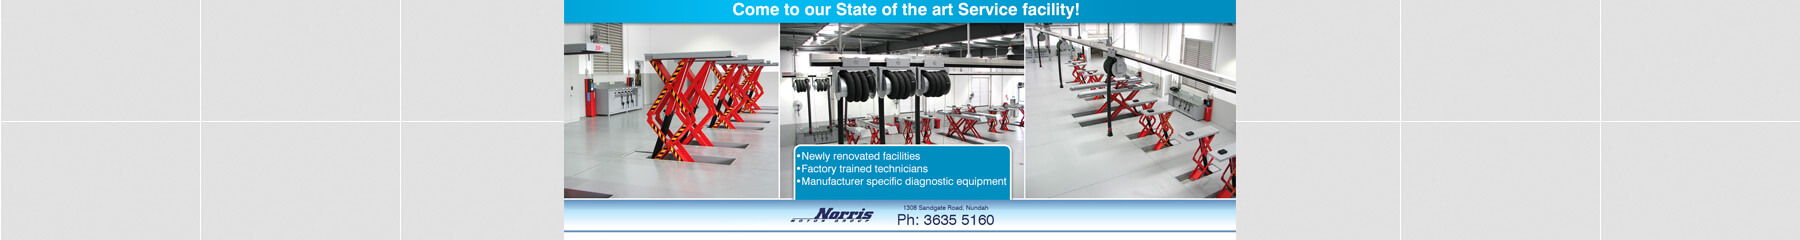 Come to our state of the art service facility at Nundah Suzuki Brisbane.